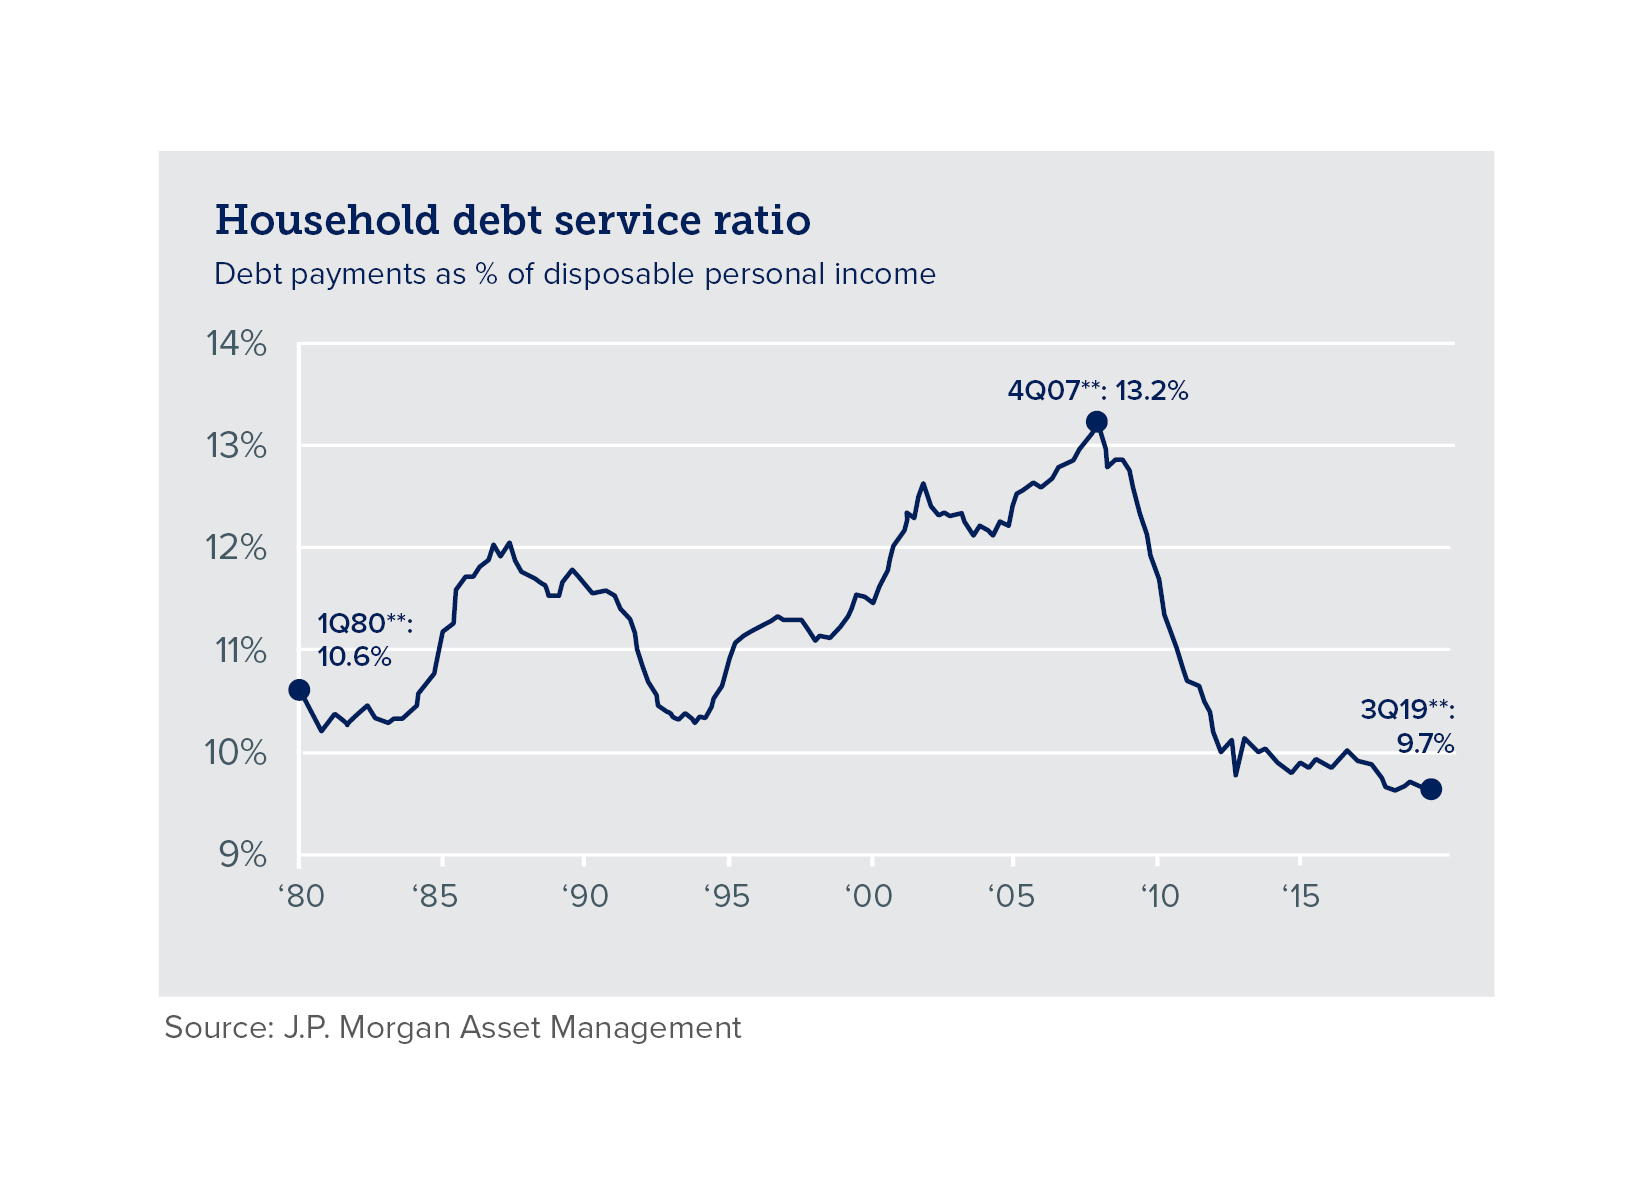 Chart of household debt service ratio over time